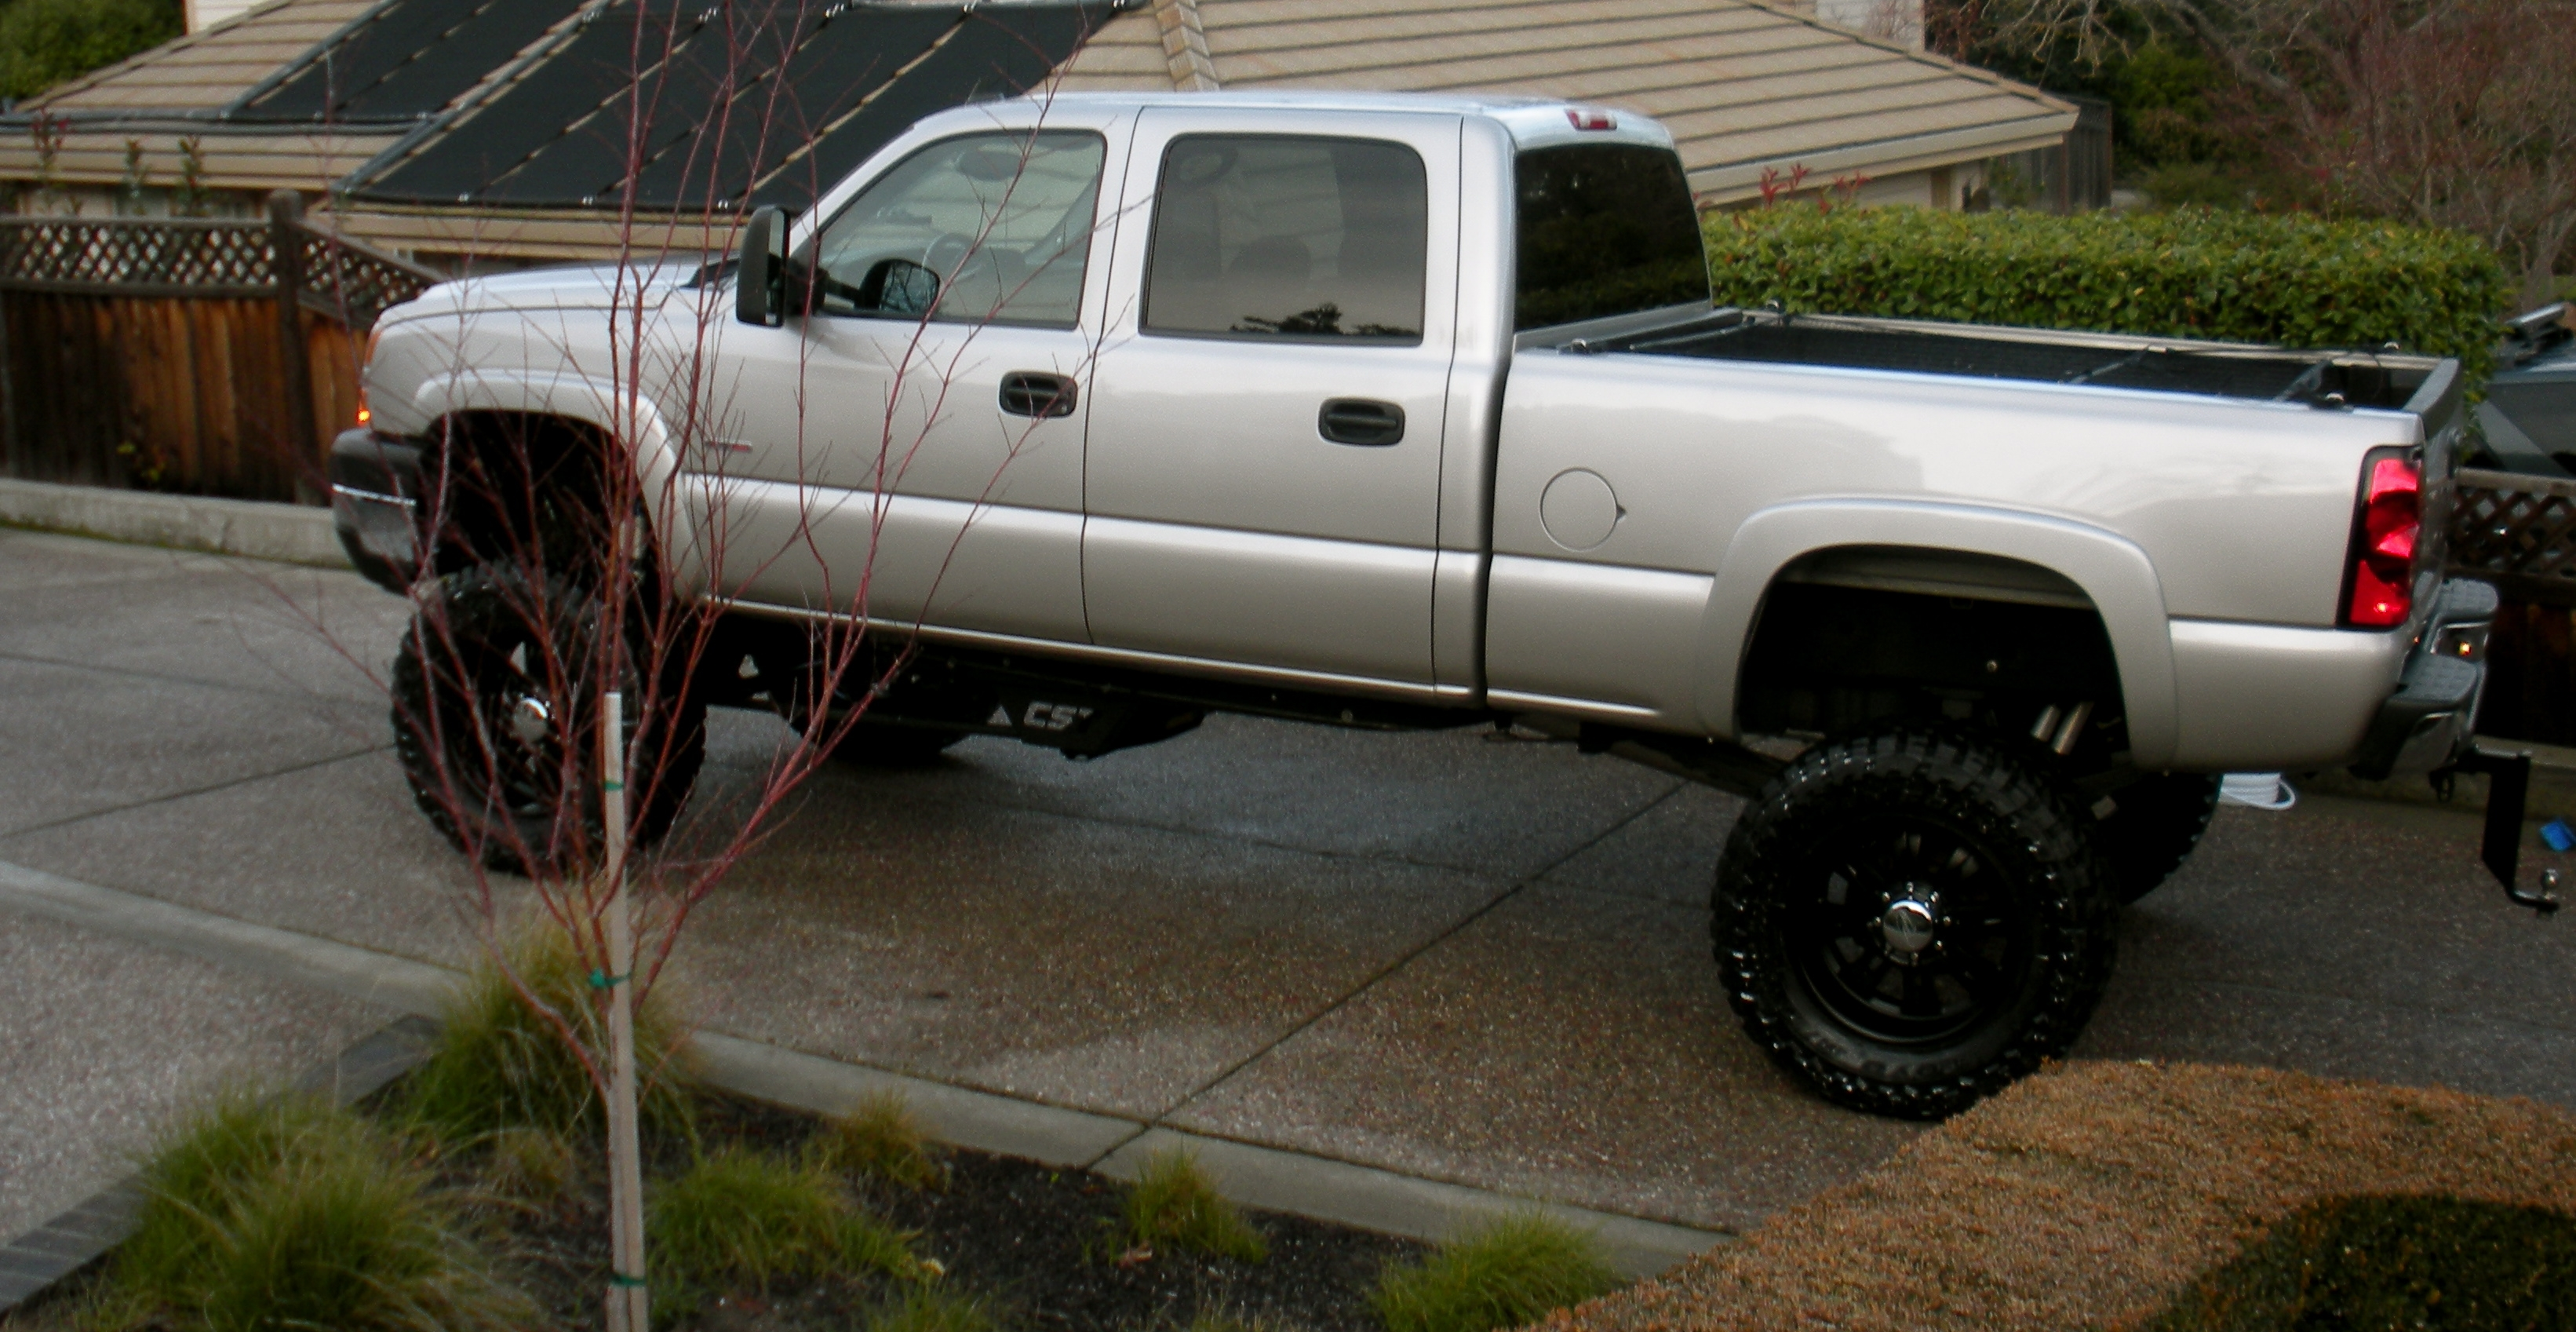 Another DIRTY*M@X 2006 Chevrolet Silverado 2500 HD Crew Cab post... - 13866023